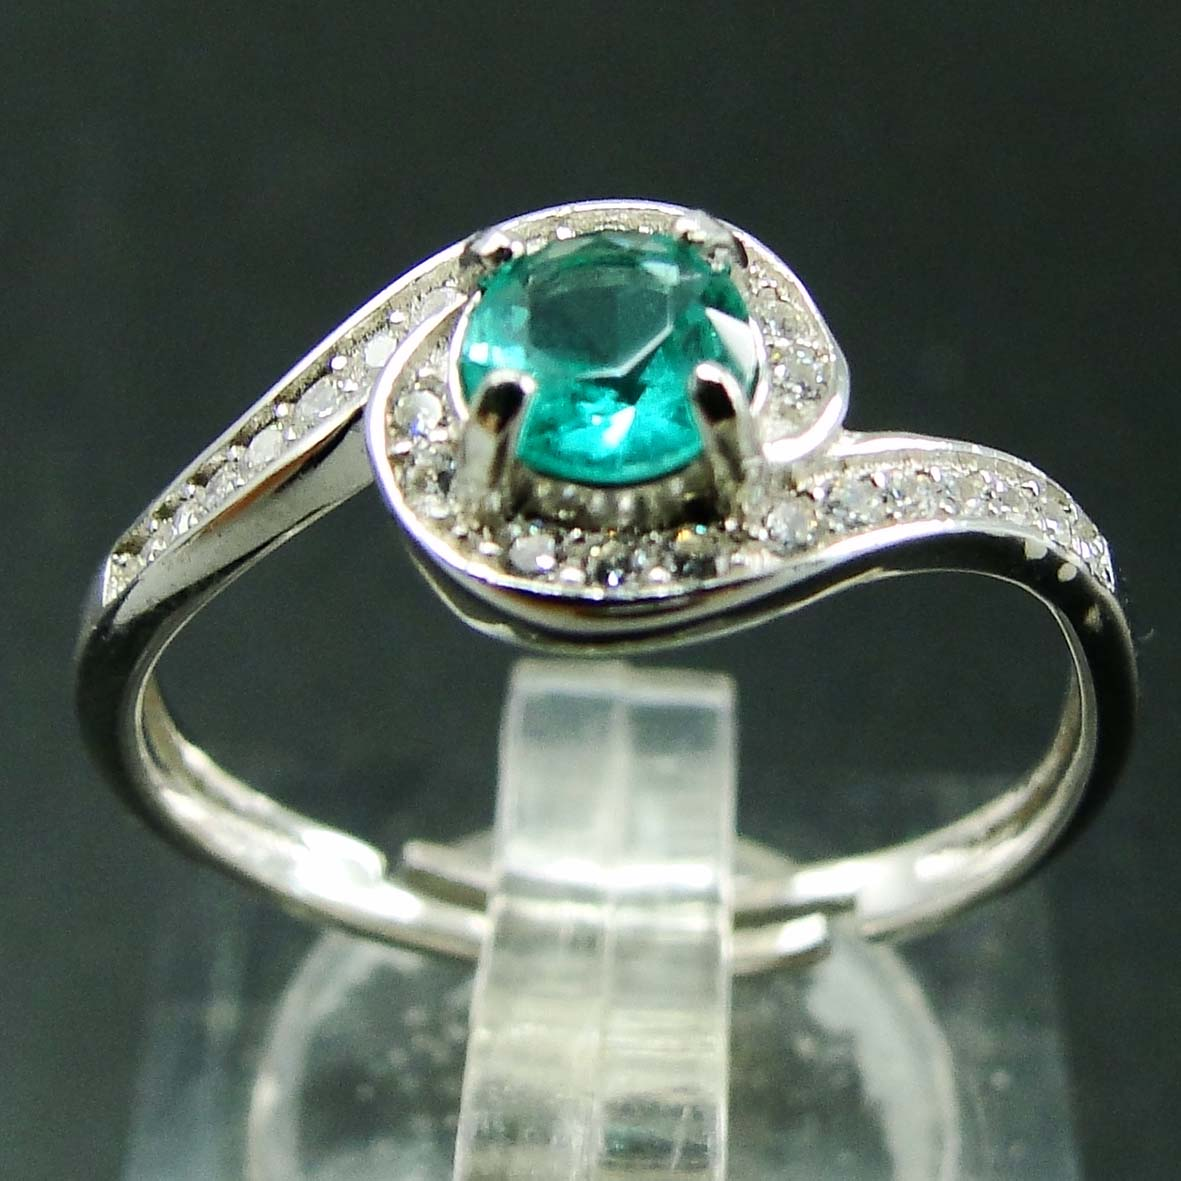 Beautiful Gemstone Natural Green Spinel Jewelry Rings Size Free Woman Resizable Wedding Ring in 925 Sterling Silver Jewelry